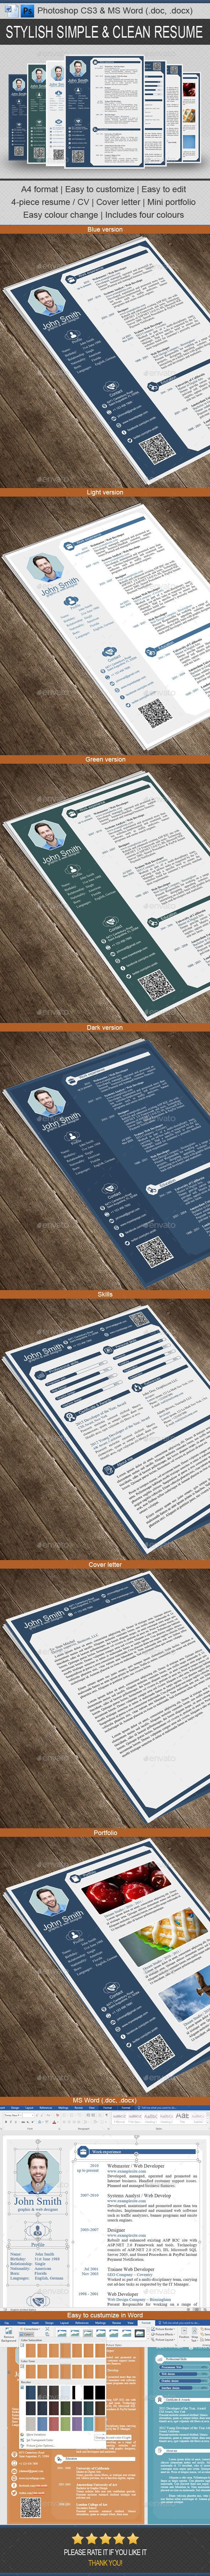 Resume — Photoshop PSD #simple resume #job • Available here → https://graphicriver.net/item/resume/14882309?ref=pxcr